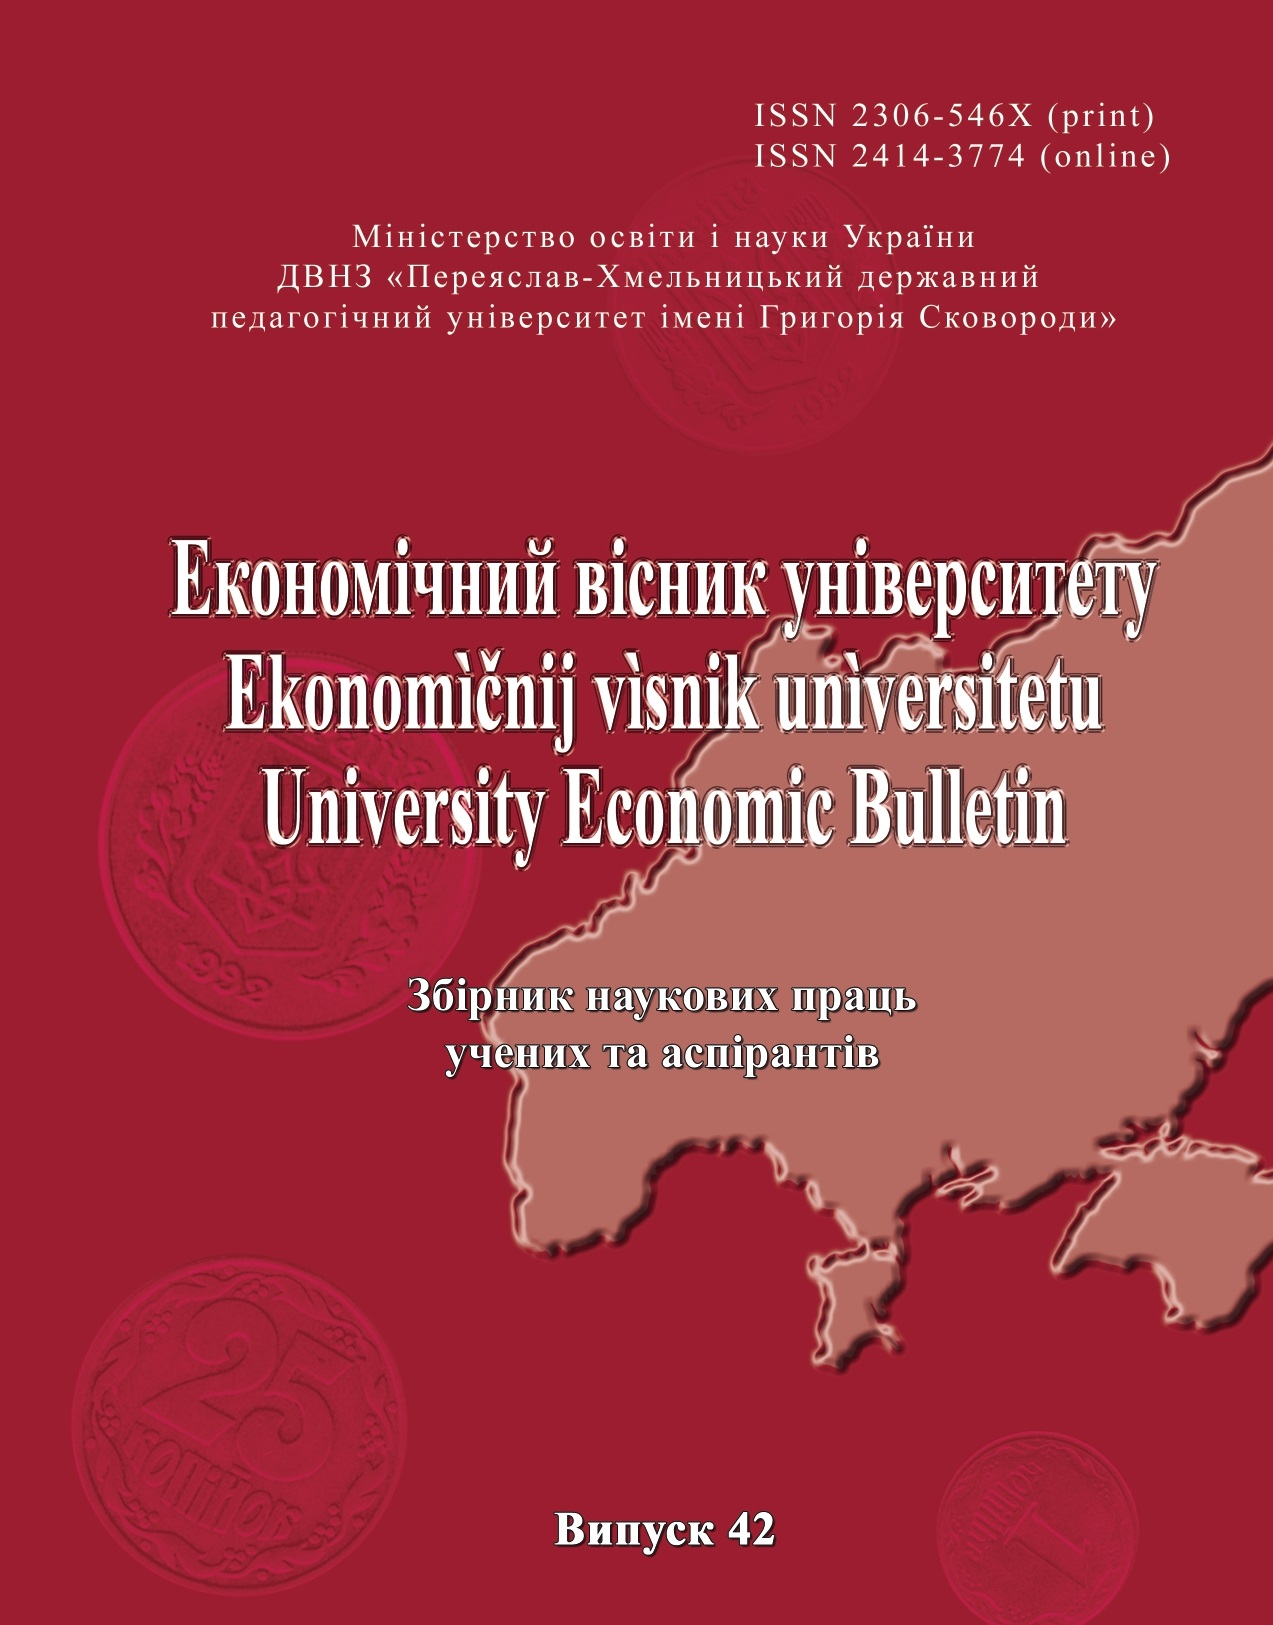 Current state and perspectives of tax regulation of insurance activities in Ukraine Cover Image